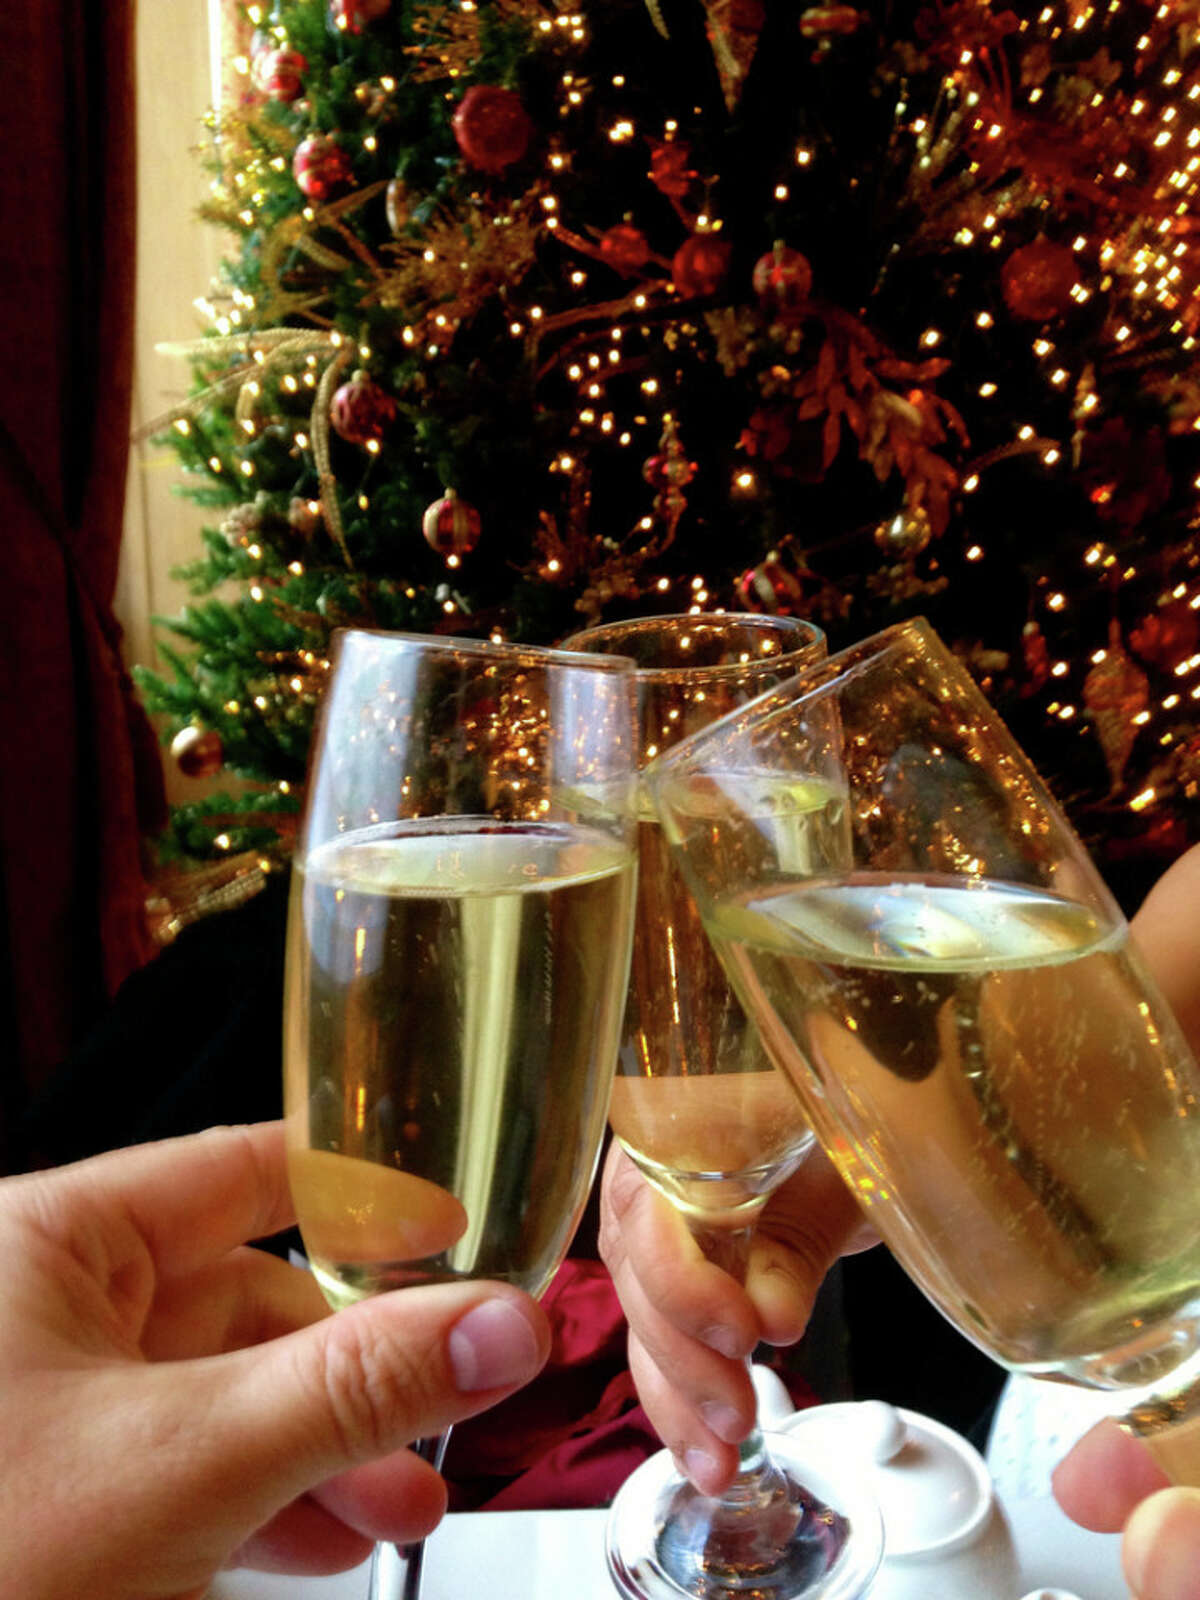 Looking to stay local this New Year's Eve? Here's a list of suggested of restaurants and events happening around Southwestern Connecticut.